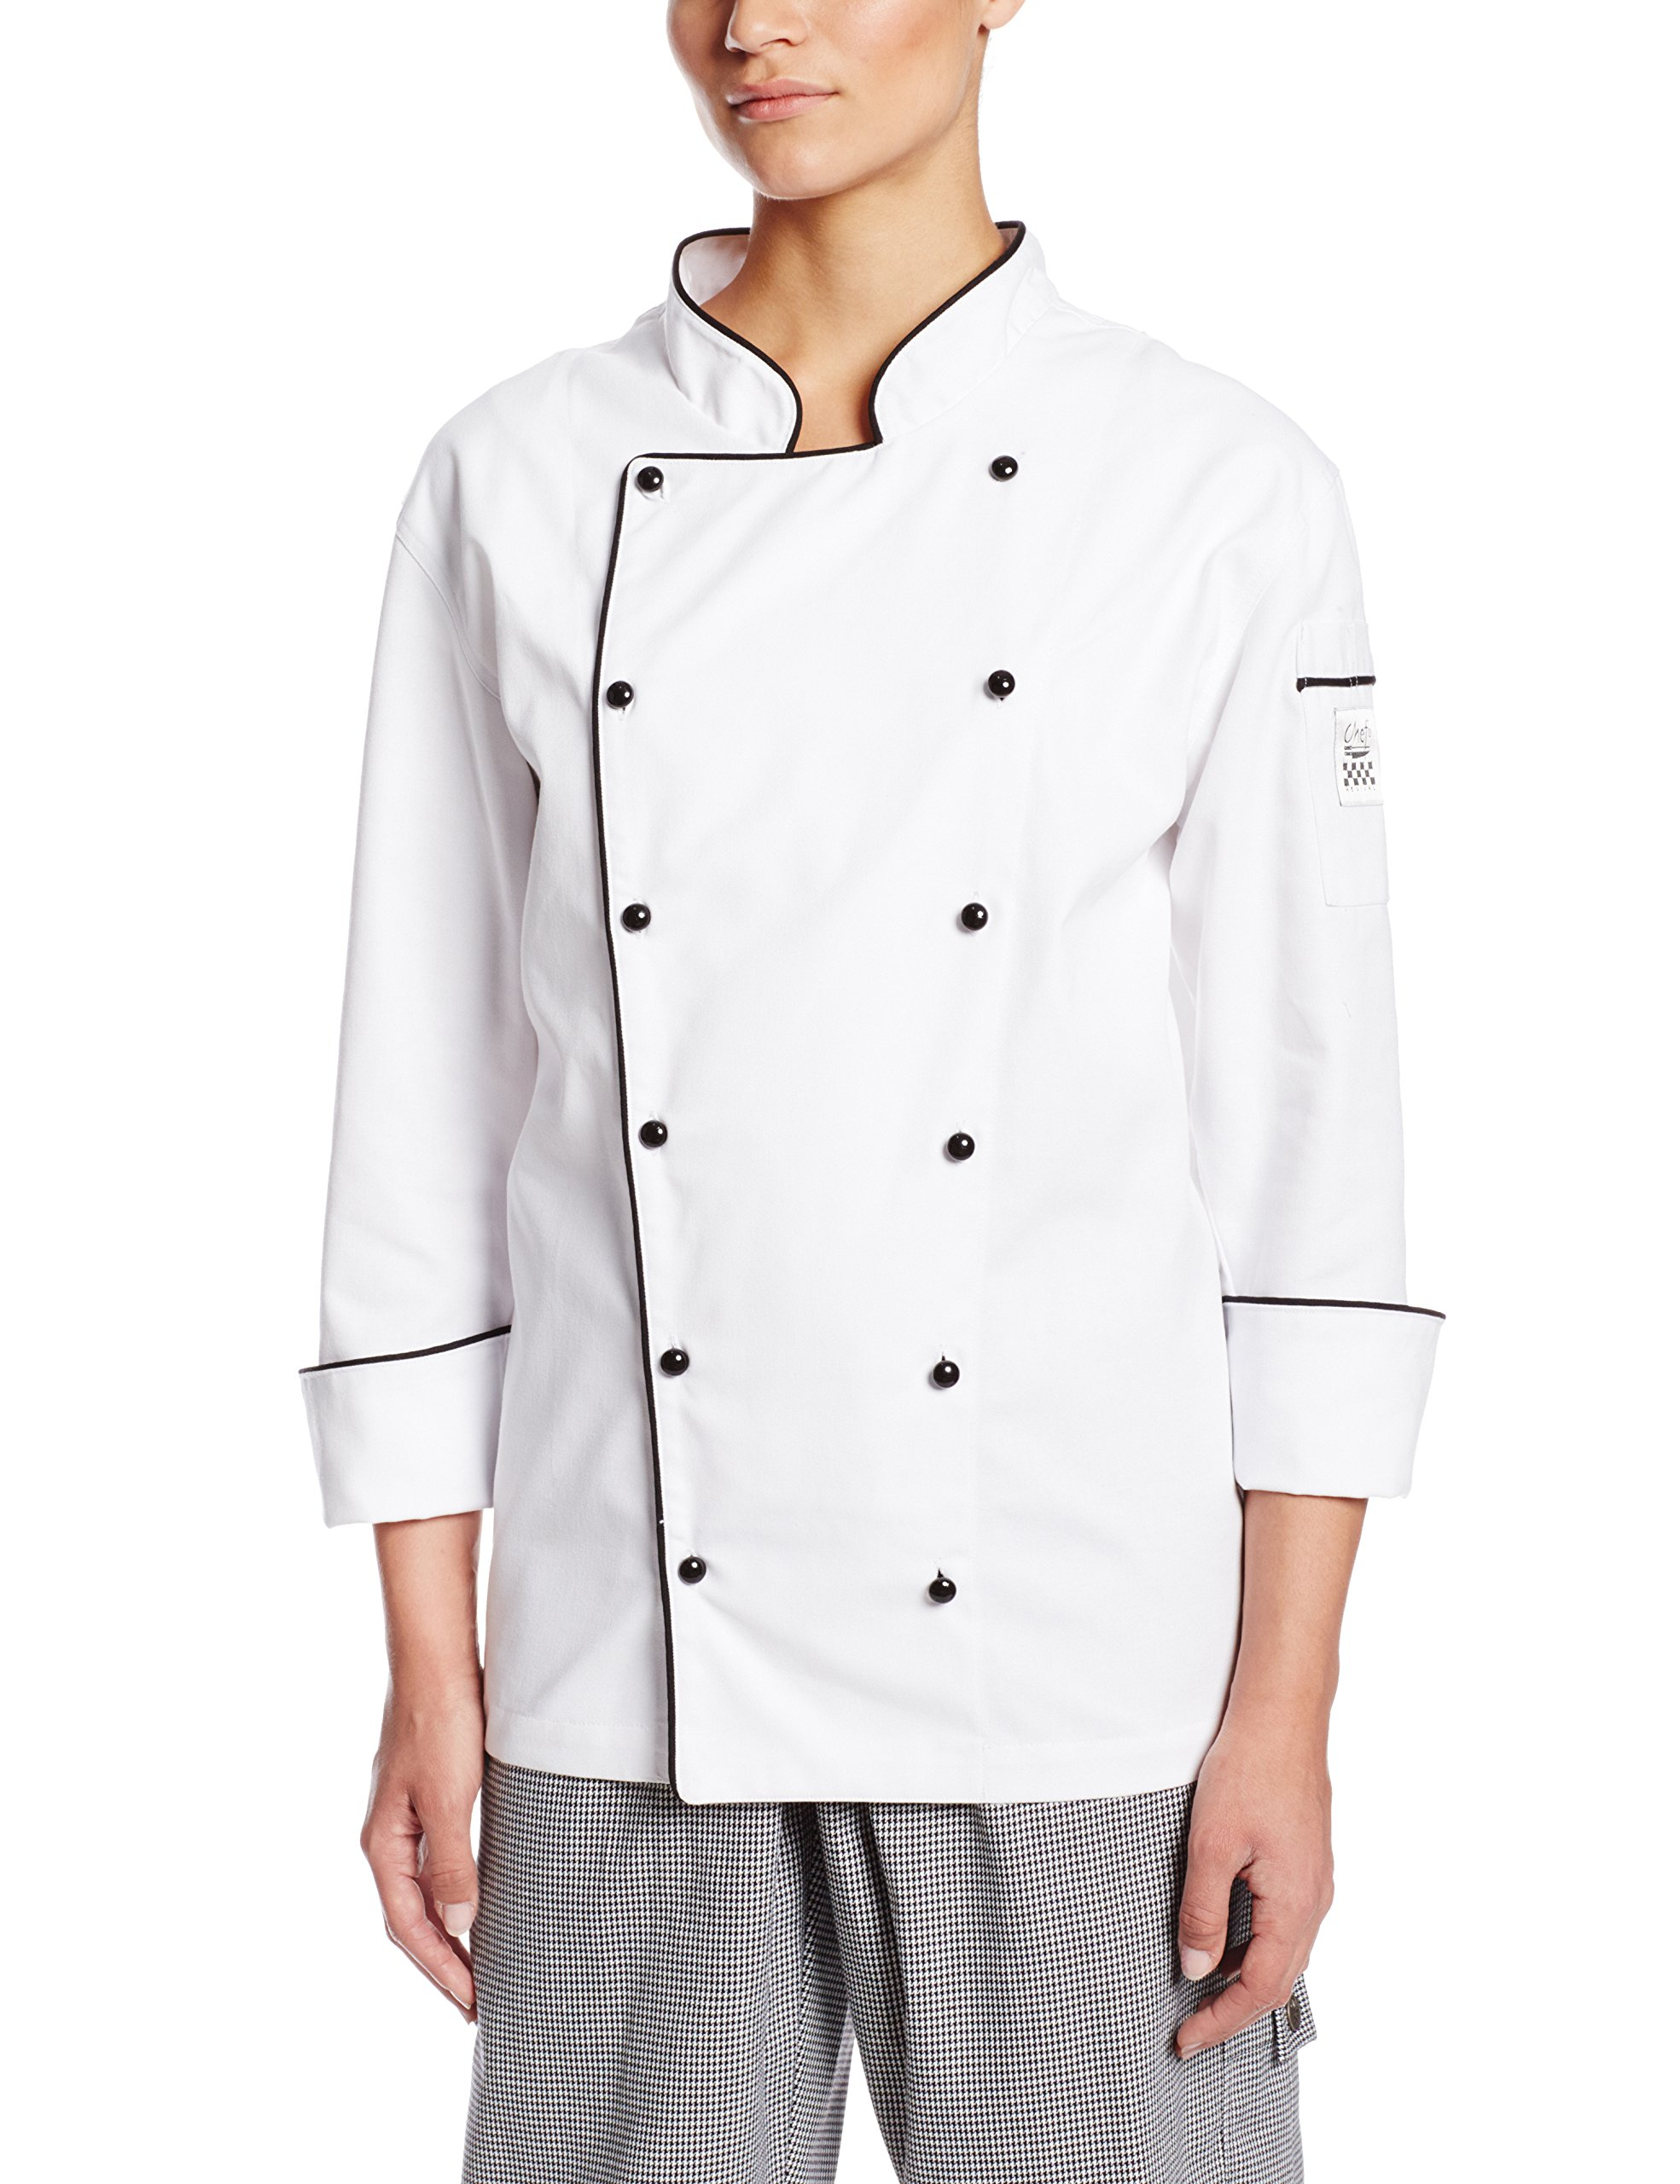 Chef Revival LJ044 Chef-tex Poly Cotton Ladies Brigade Jacket with Black Piping and Push Through Button, Medium, White by Chef Revival